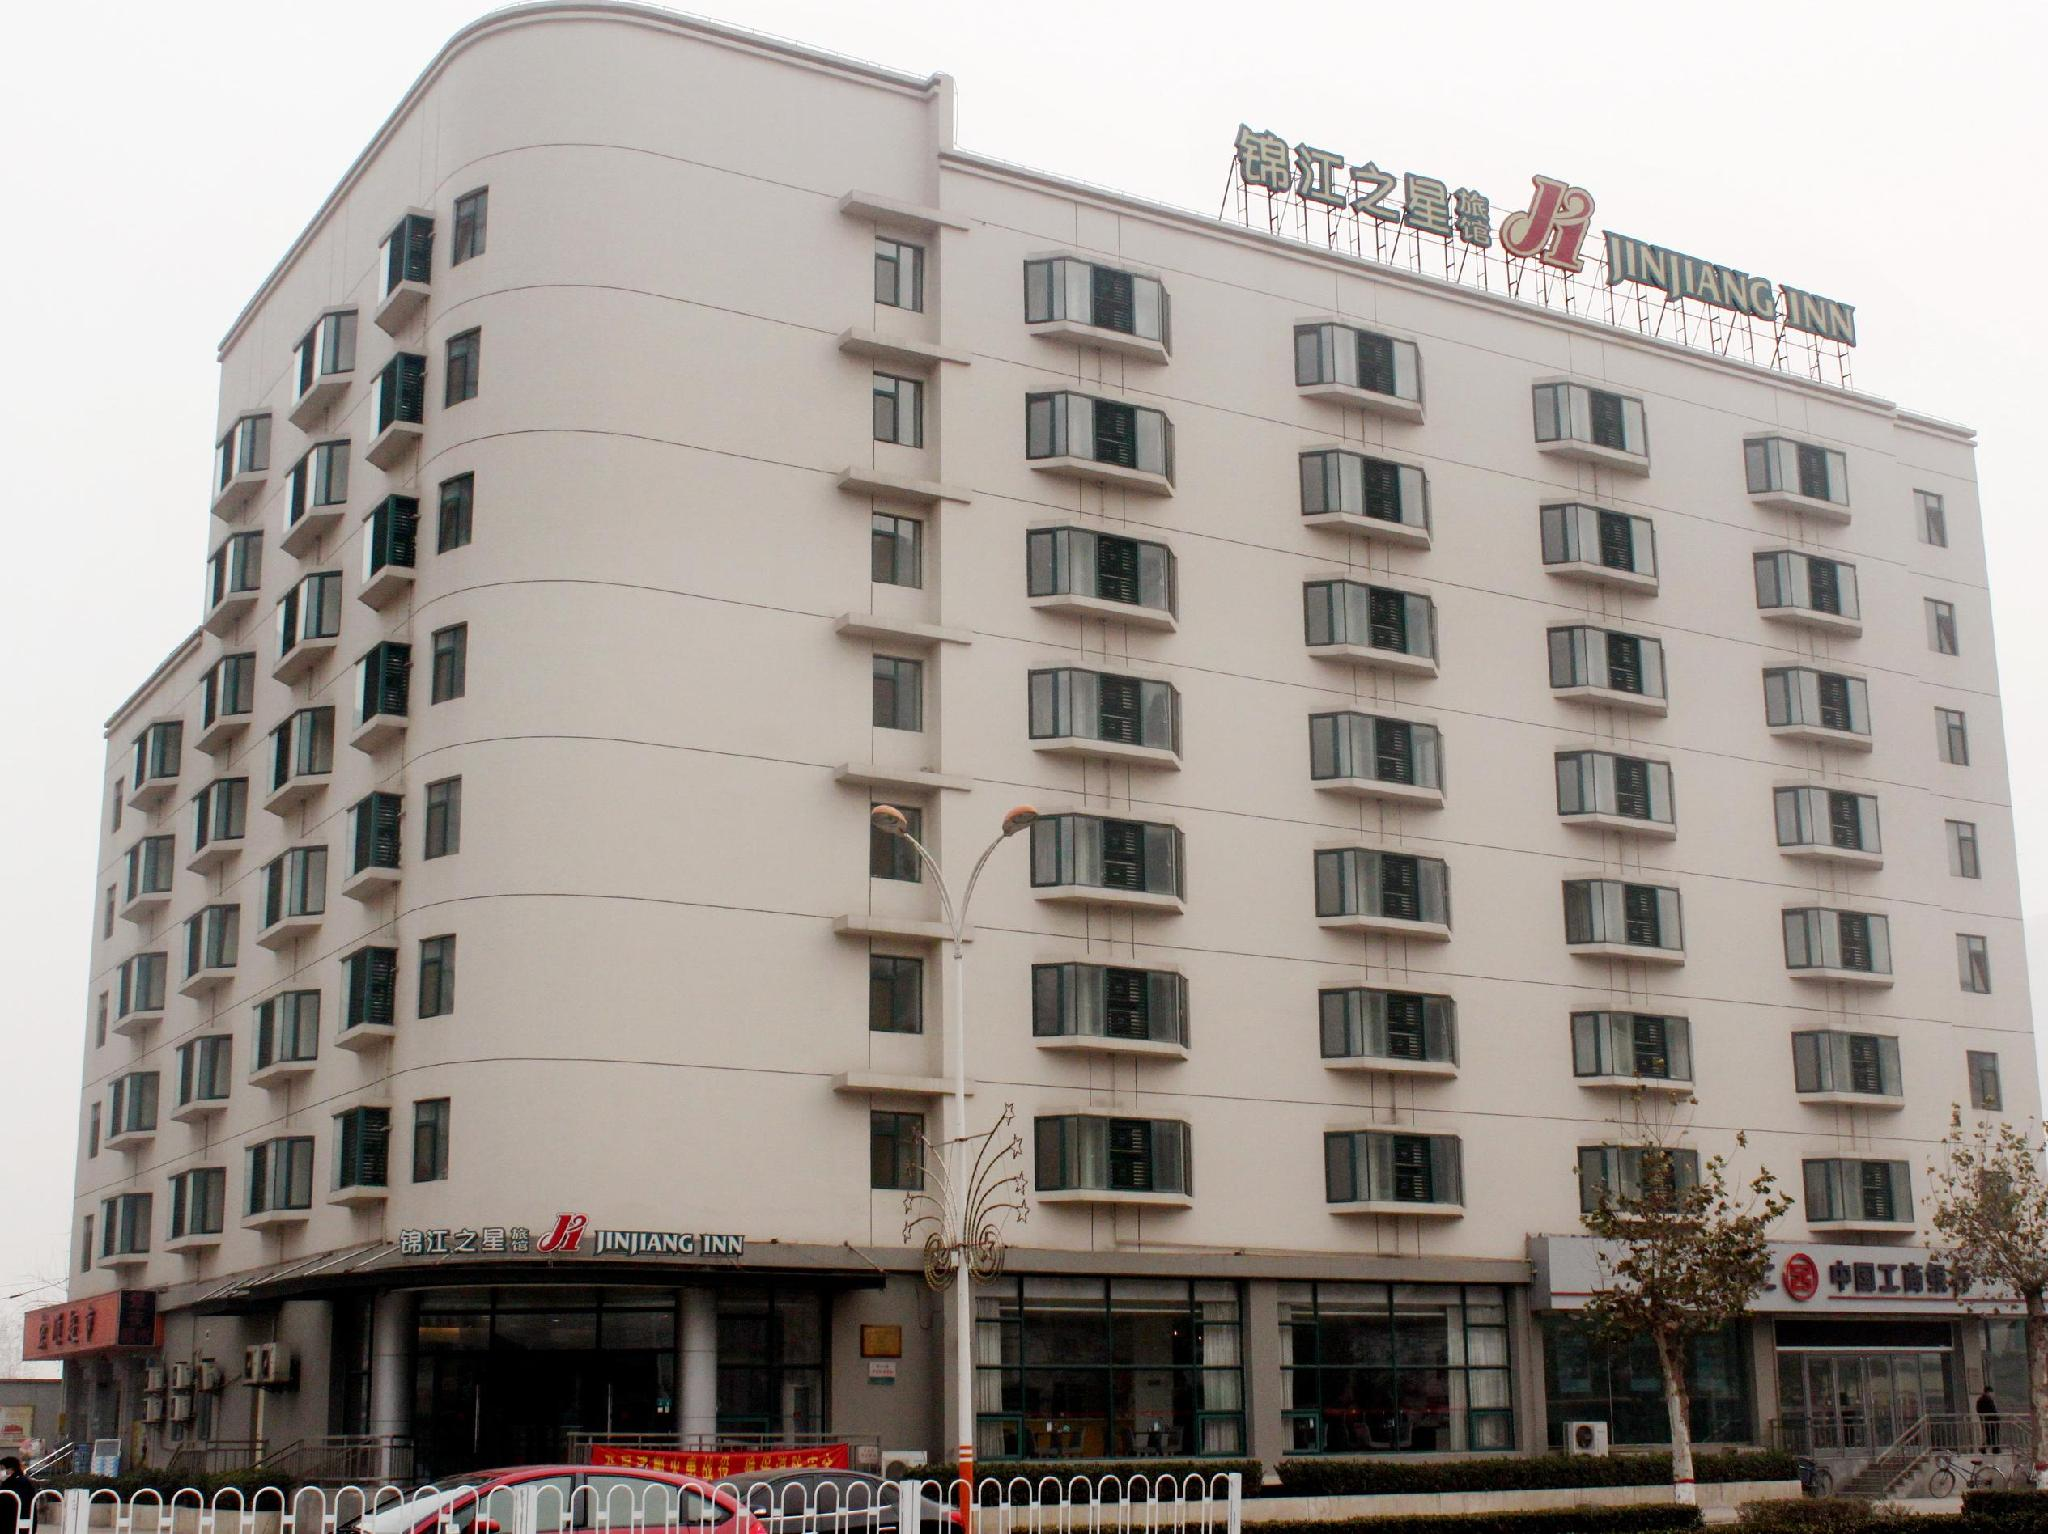 Jinjiang Inn Shijiazhuang Pingan Street – Hotel Reviews, Picture & Room Rates